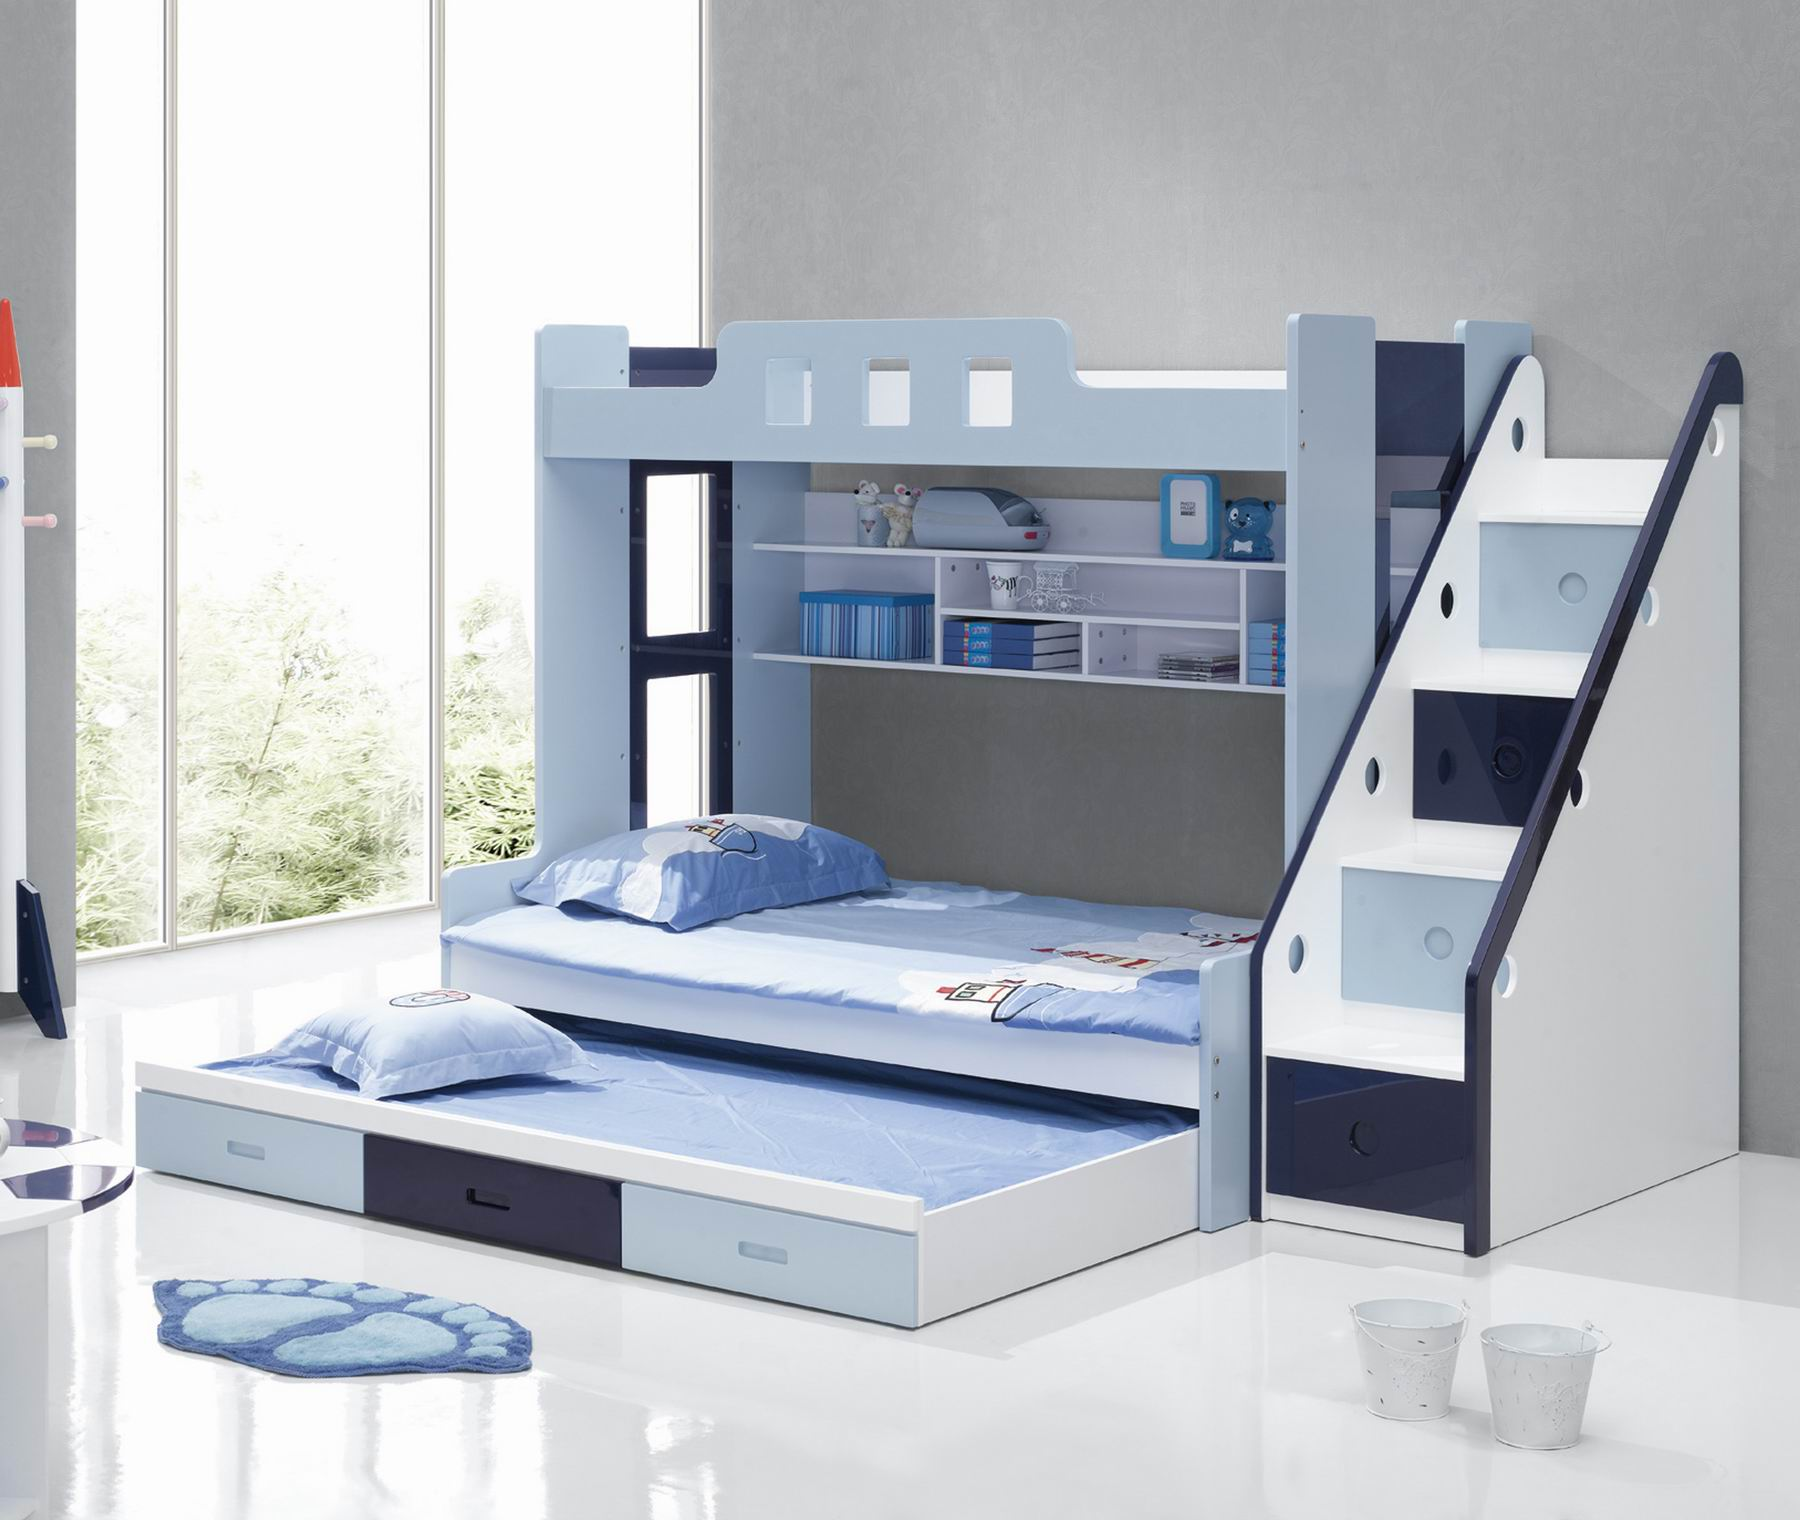 bunk bed couch - Bunk Beds For Kids Plans